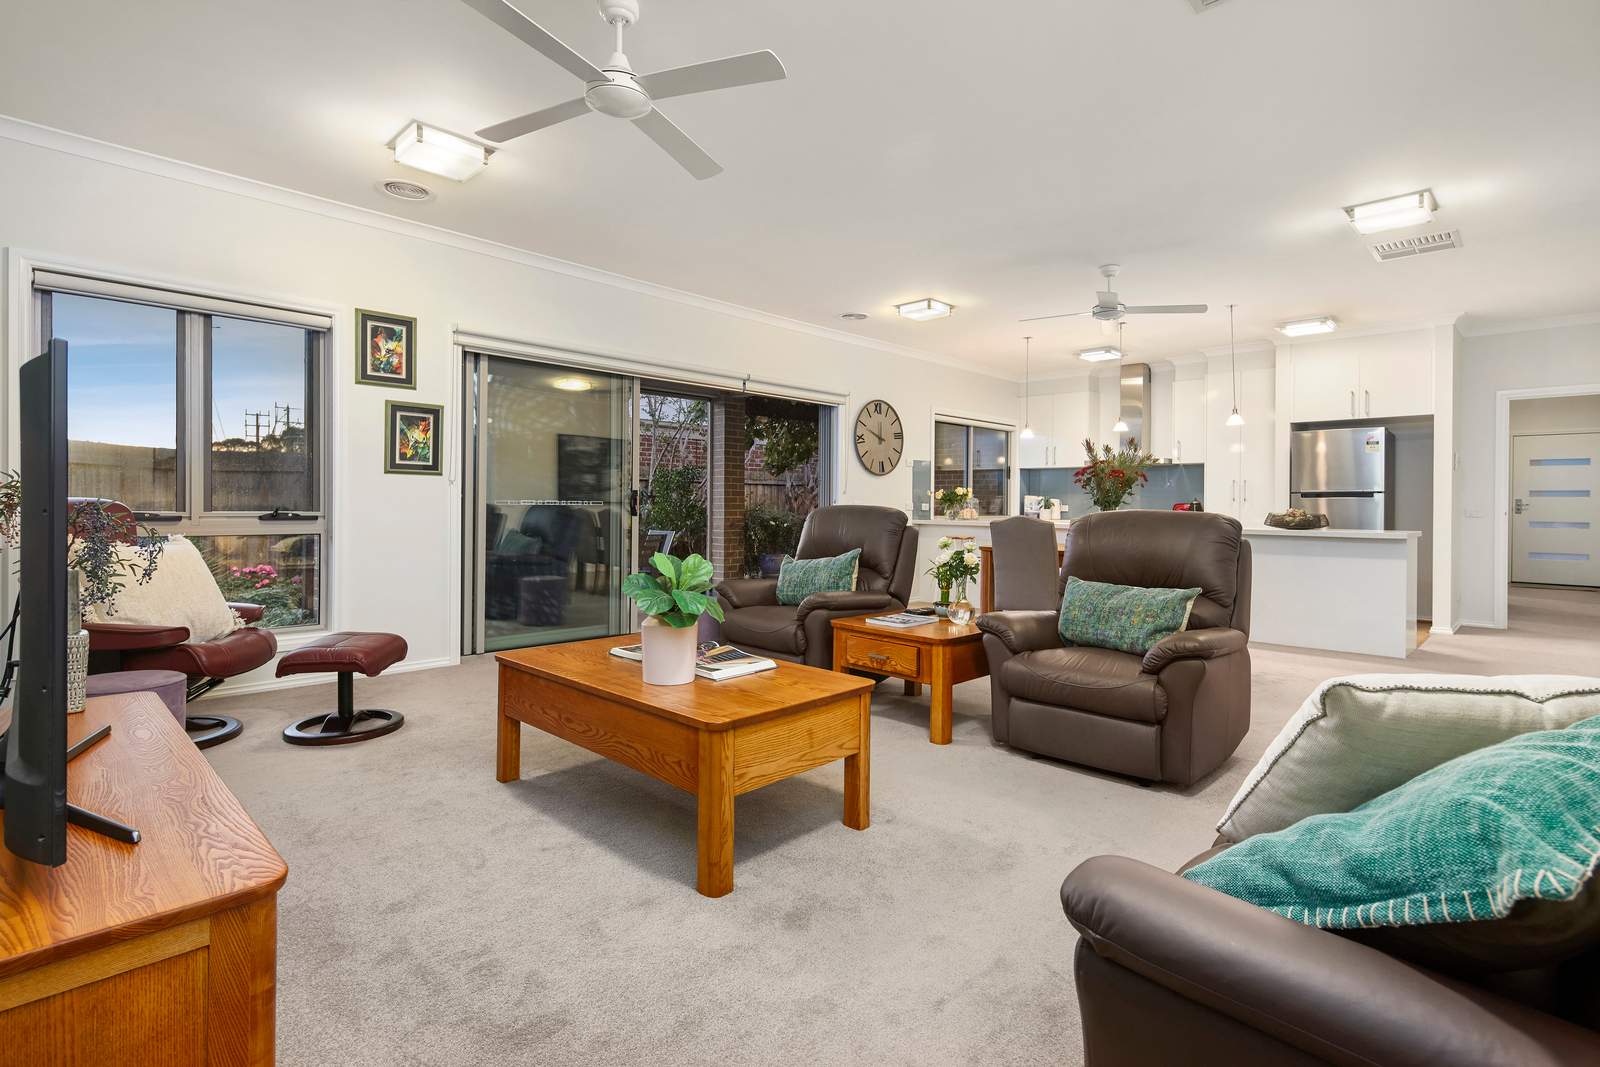 159 The Avenue, Spotswood 3015 - Image 5